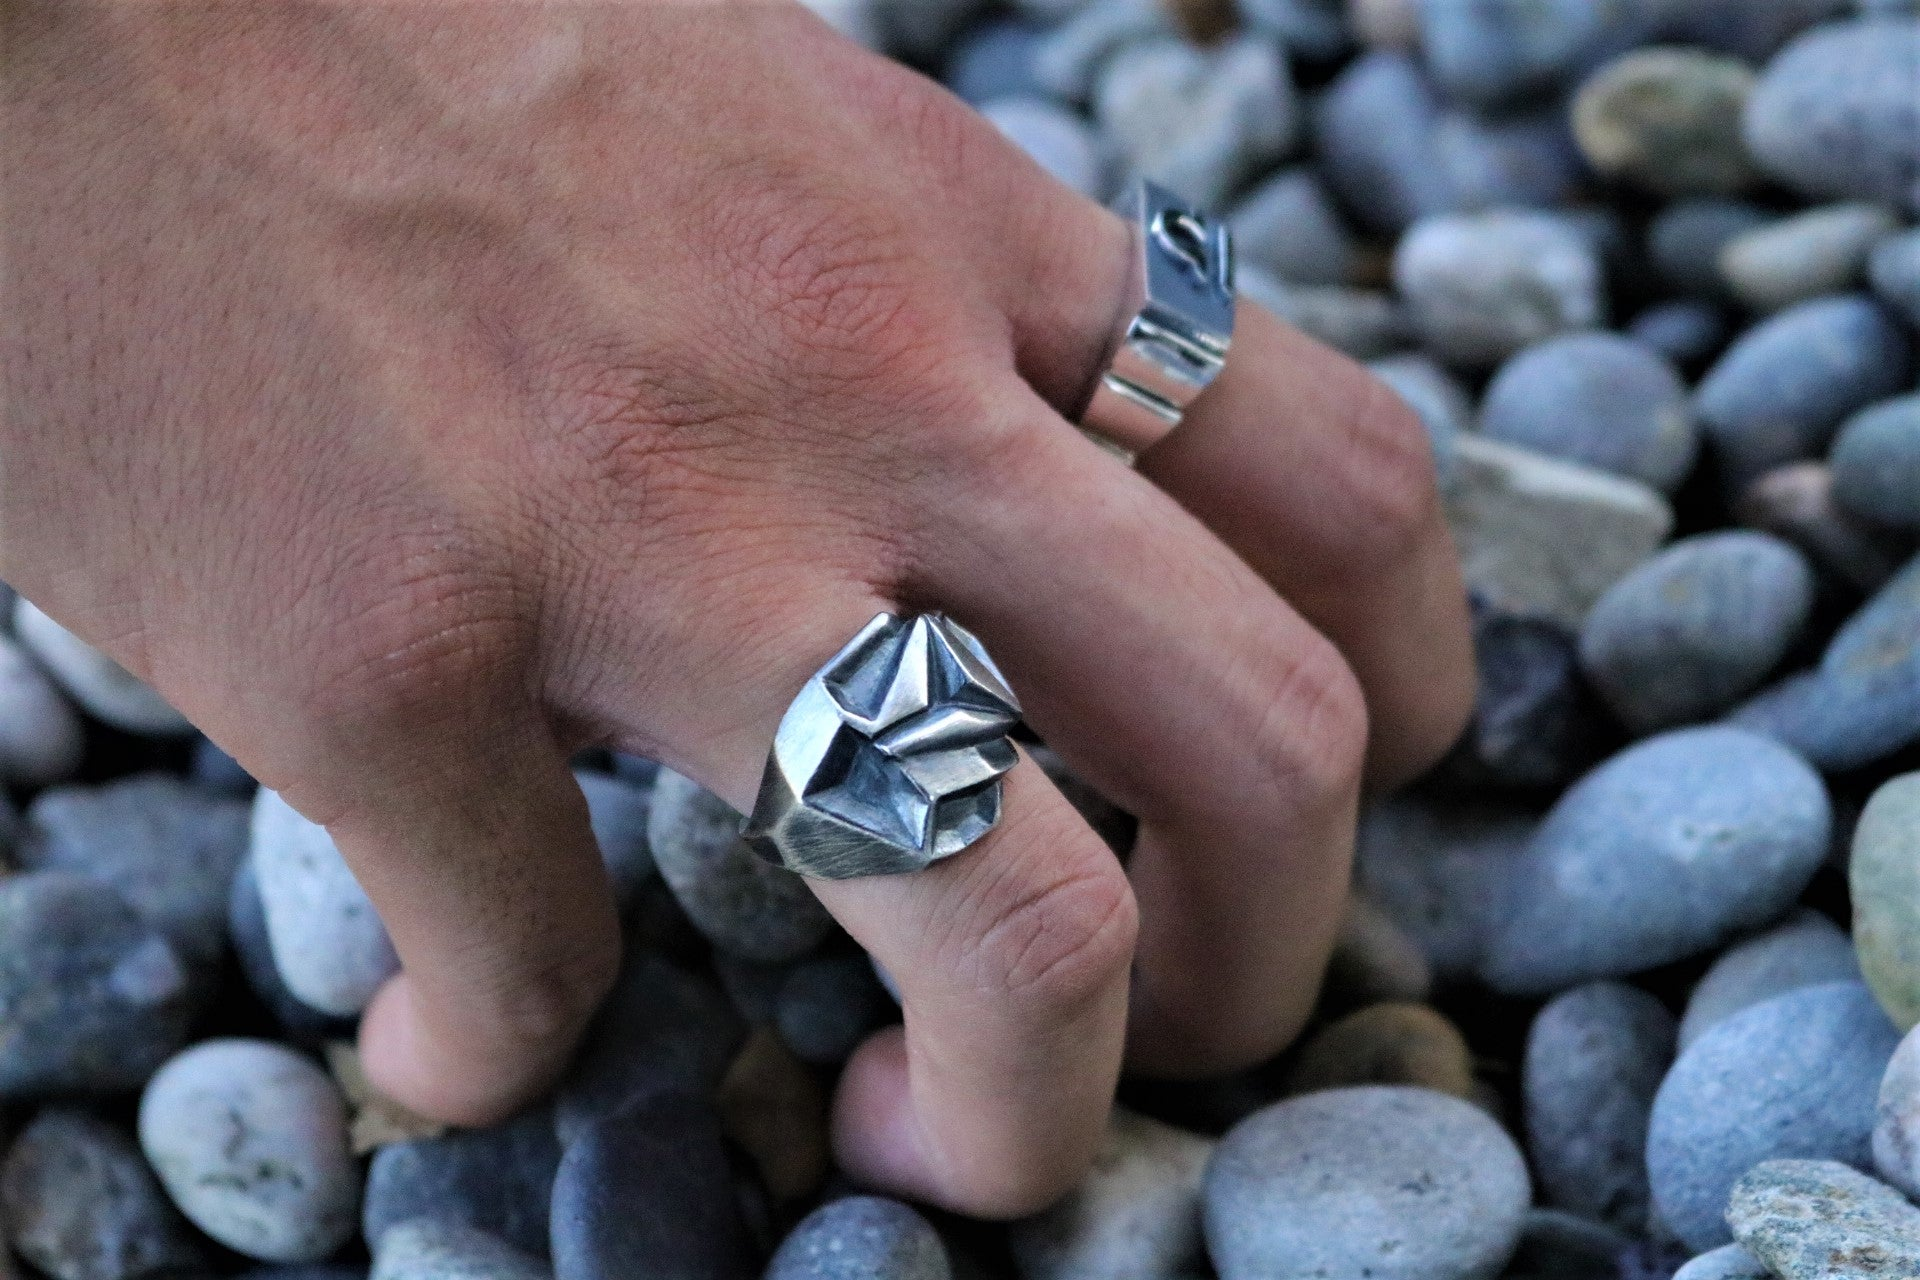 The W Brothers Magnetic Rose oxidized retro matte finish in premium grade a sterling silver ring perfect for men and female metallic rose ring thewbros.